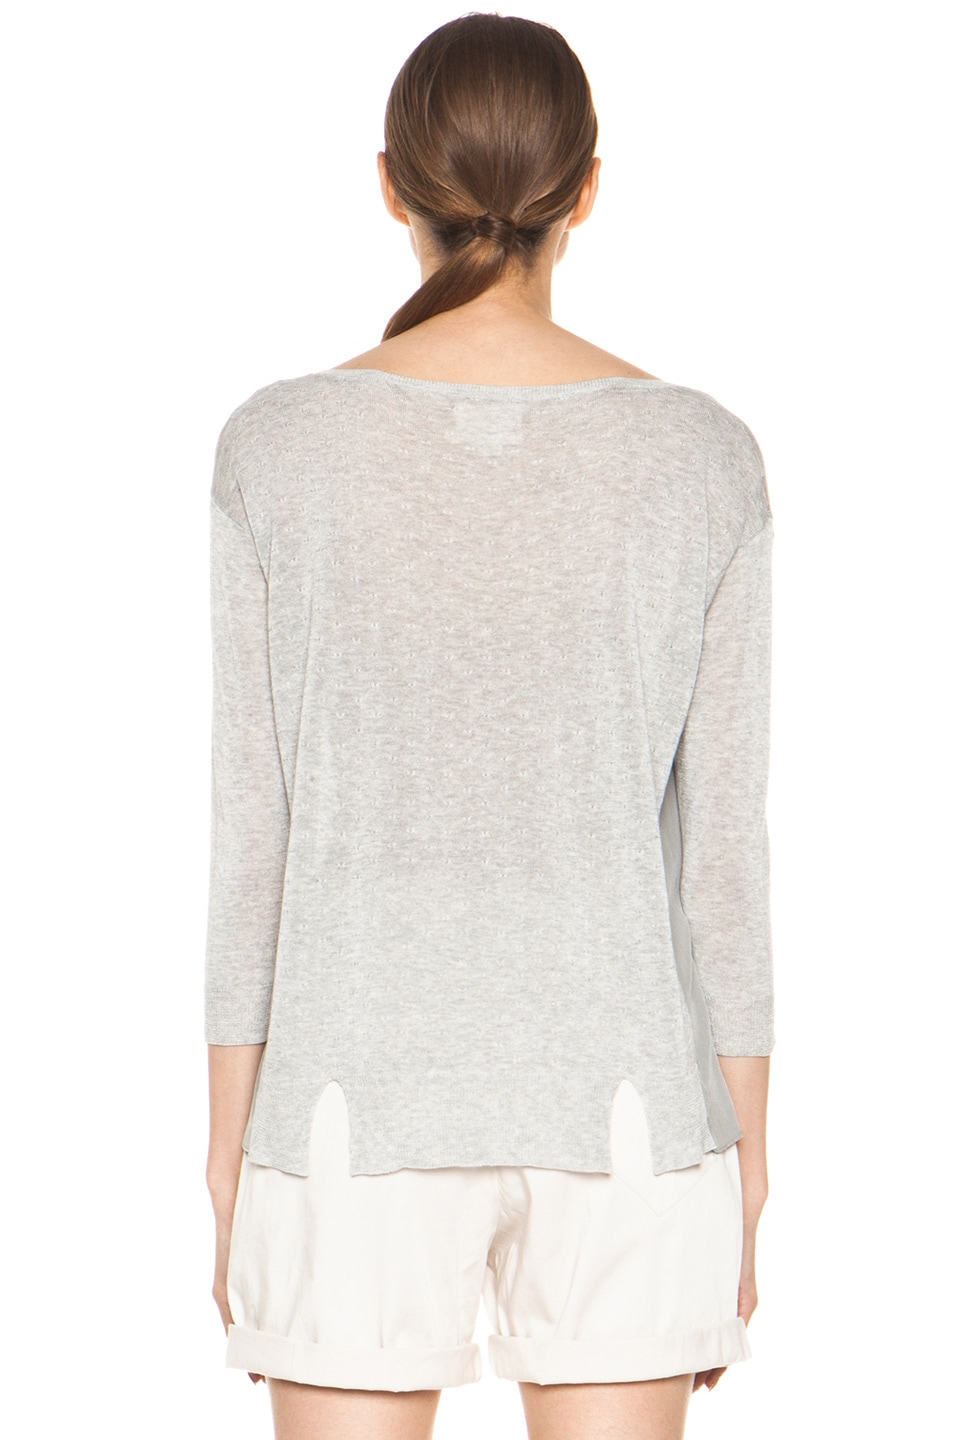 Image 4 of Girl. by Band of Outsiders Malibu Basic Sweater in Grey Heather